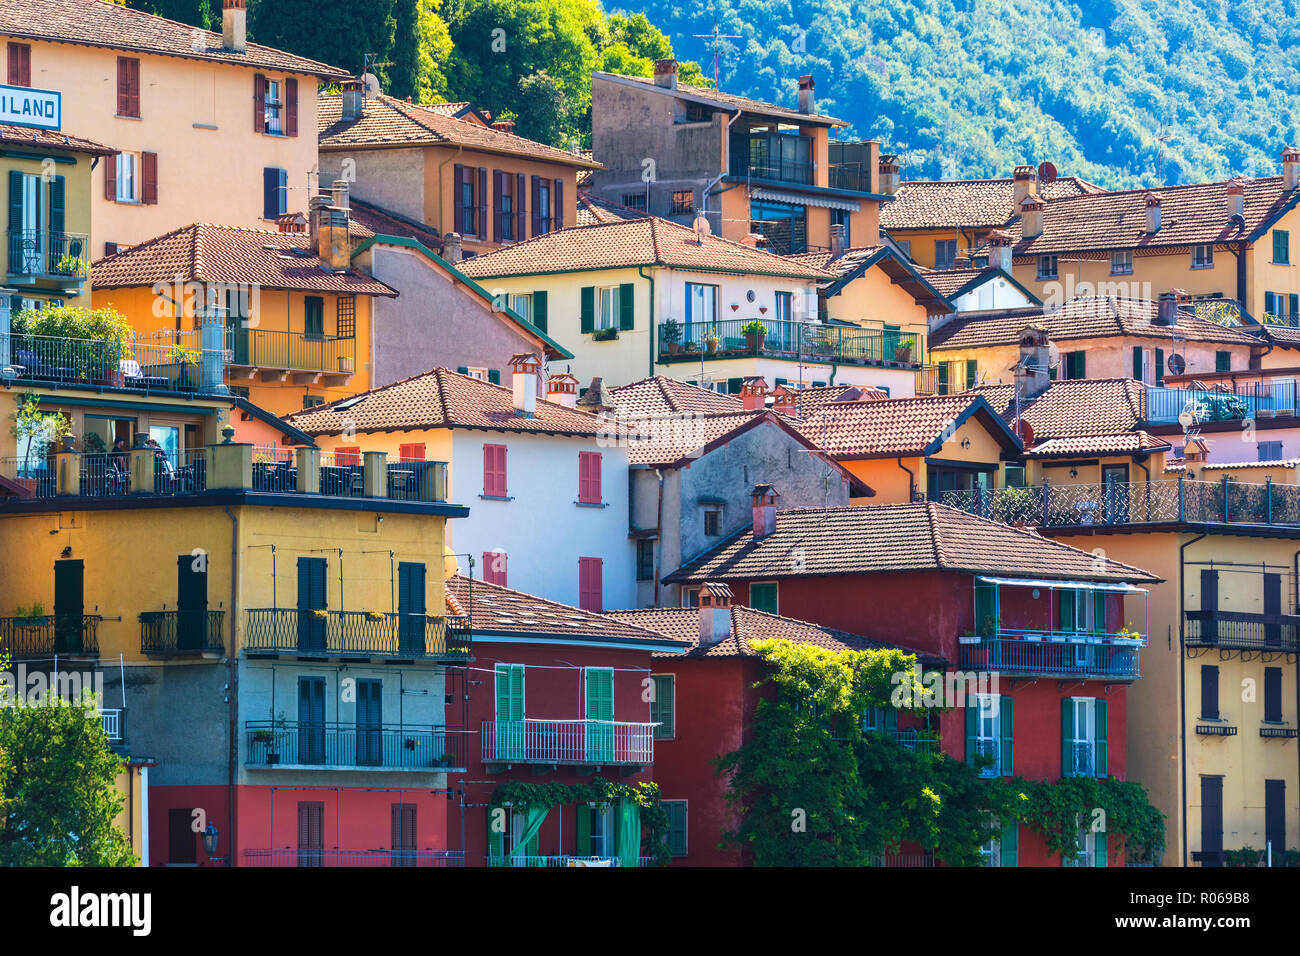 Typical architecture of colorful houses, Varenna, Lake Como, Lecco province, Lombardy, Italian Lakes, Italy, Europe - Stock Image